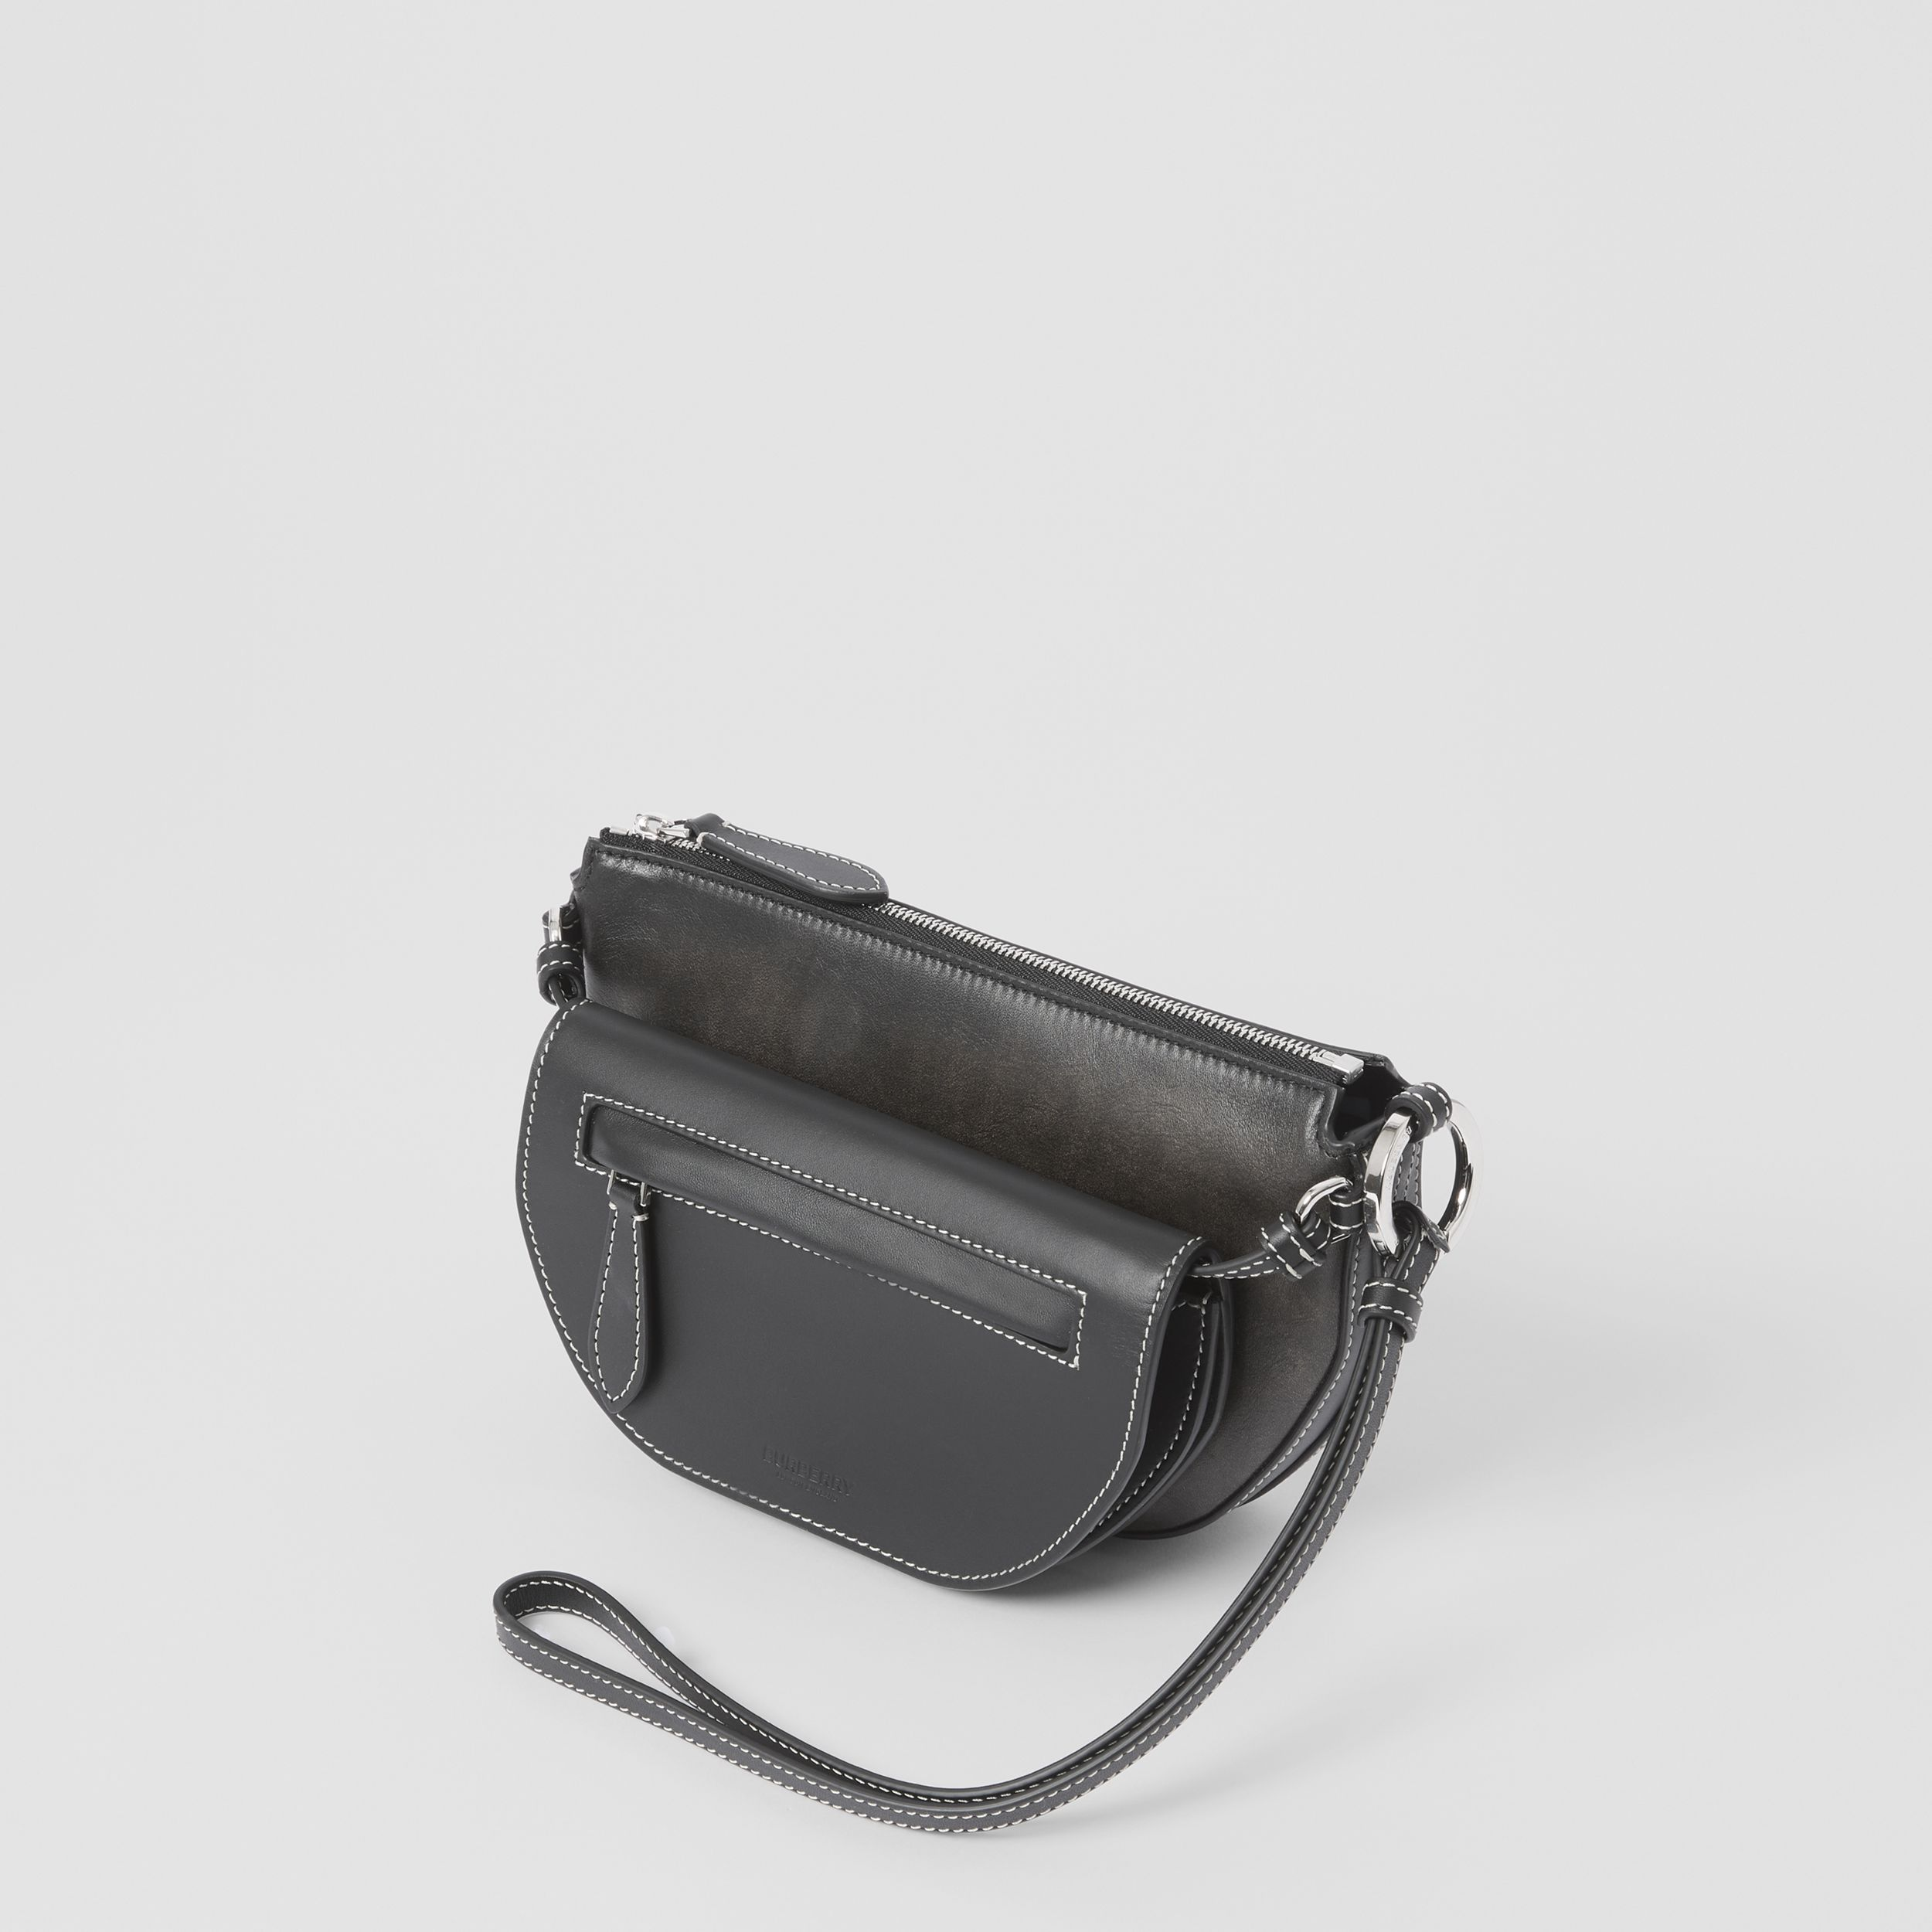 Mini Leather Double Olympia Bag in Black - Women | Burberry Canada - 3